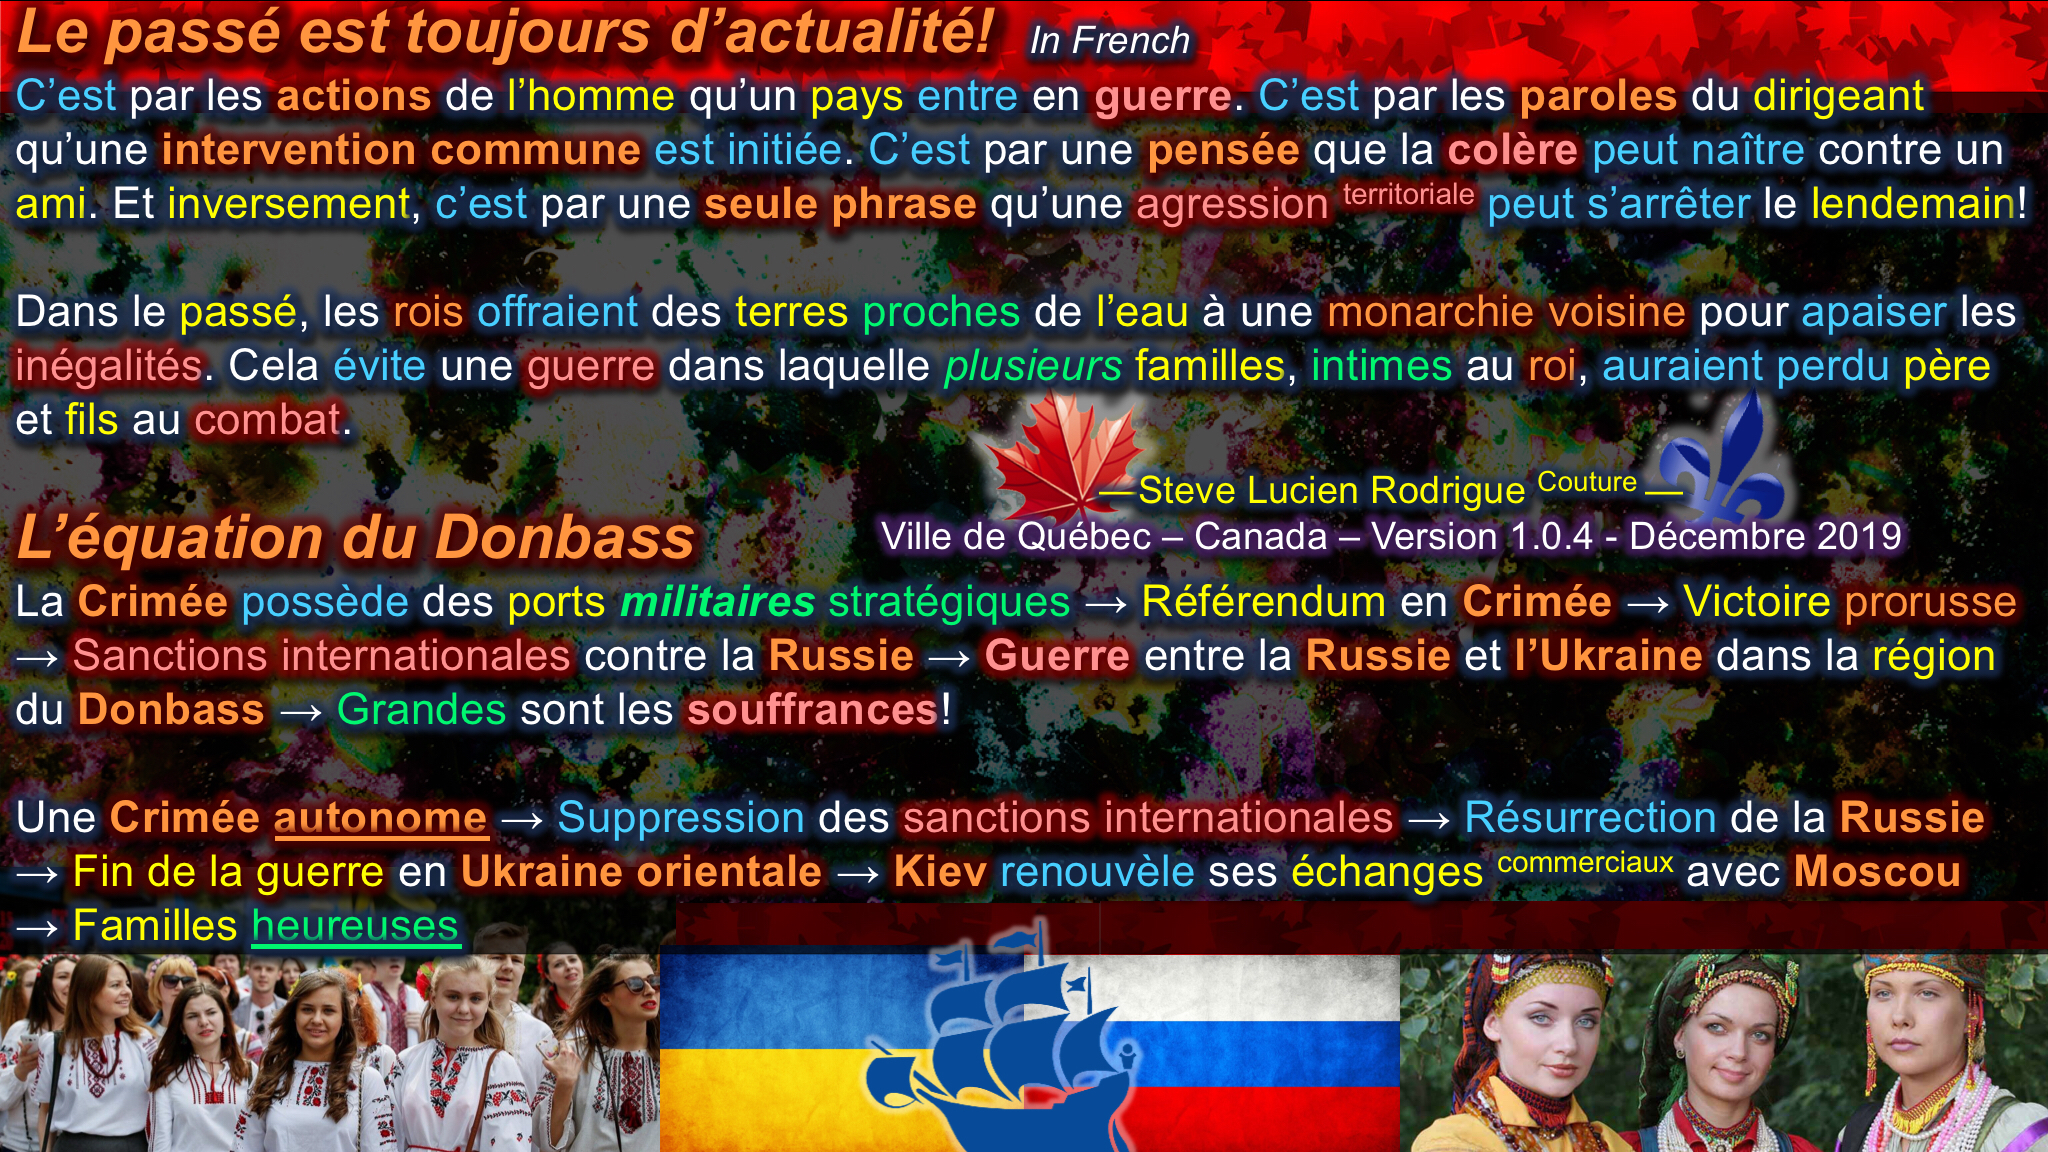 The Donbass Equation in French